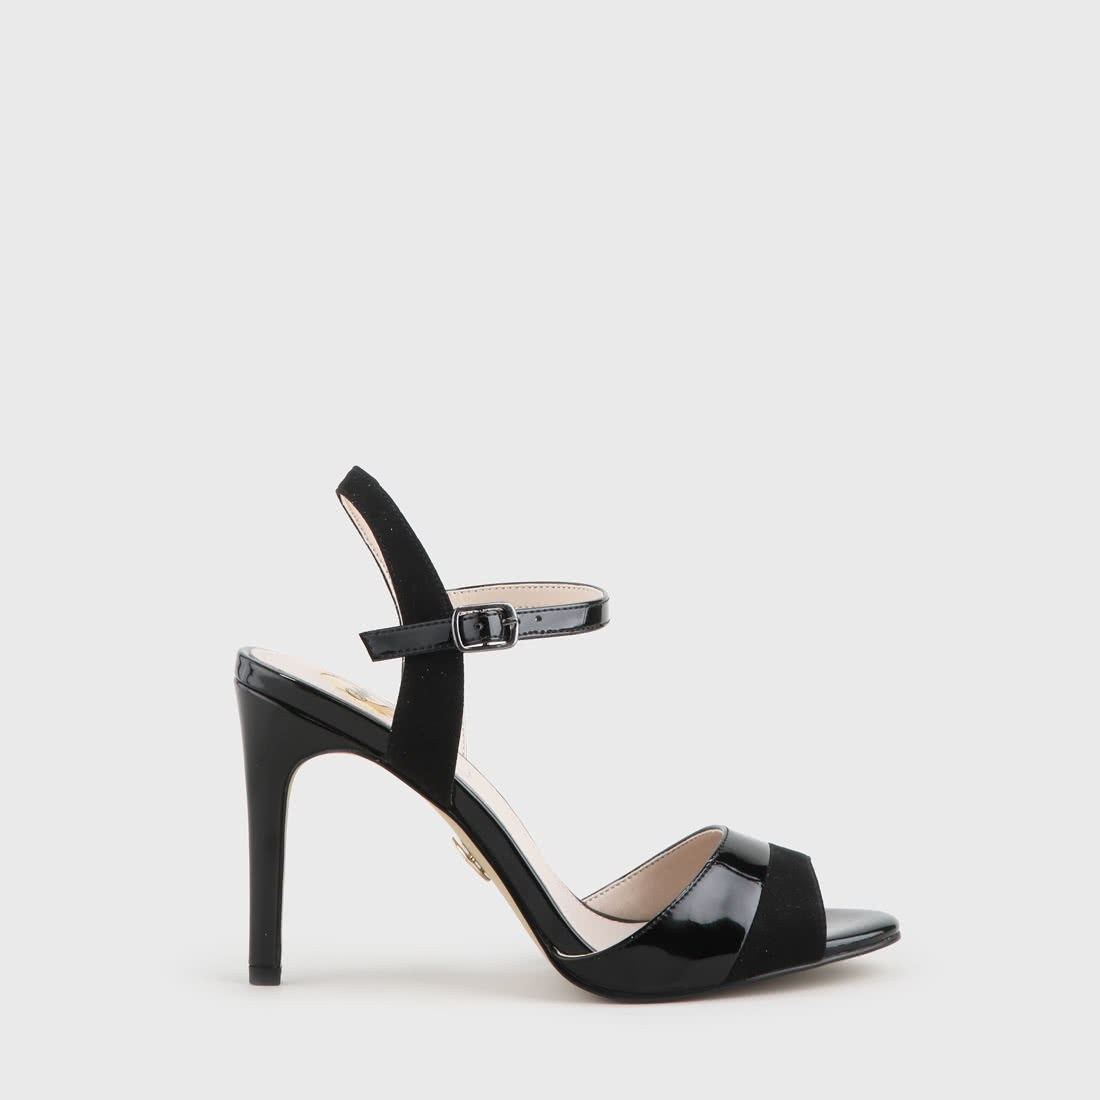 64d13387bf7 Aida Sandal suede lacquer look black buy online in BUFFALO Online ...